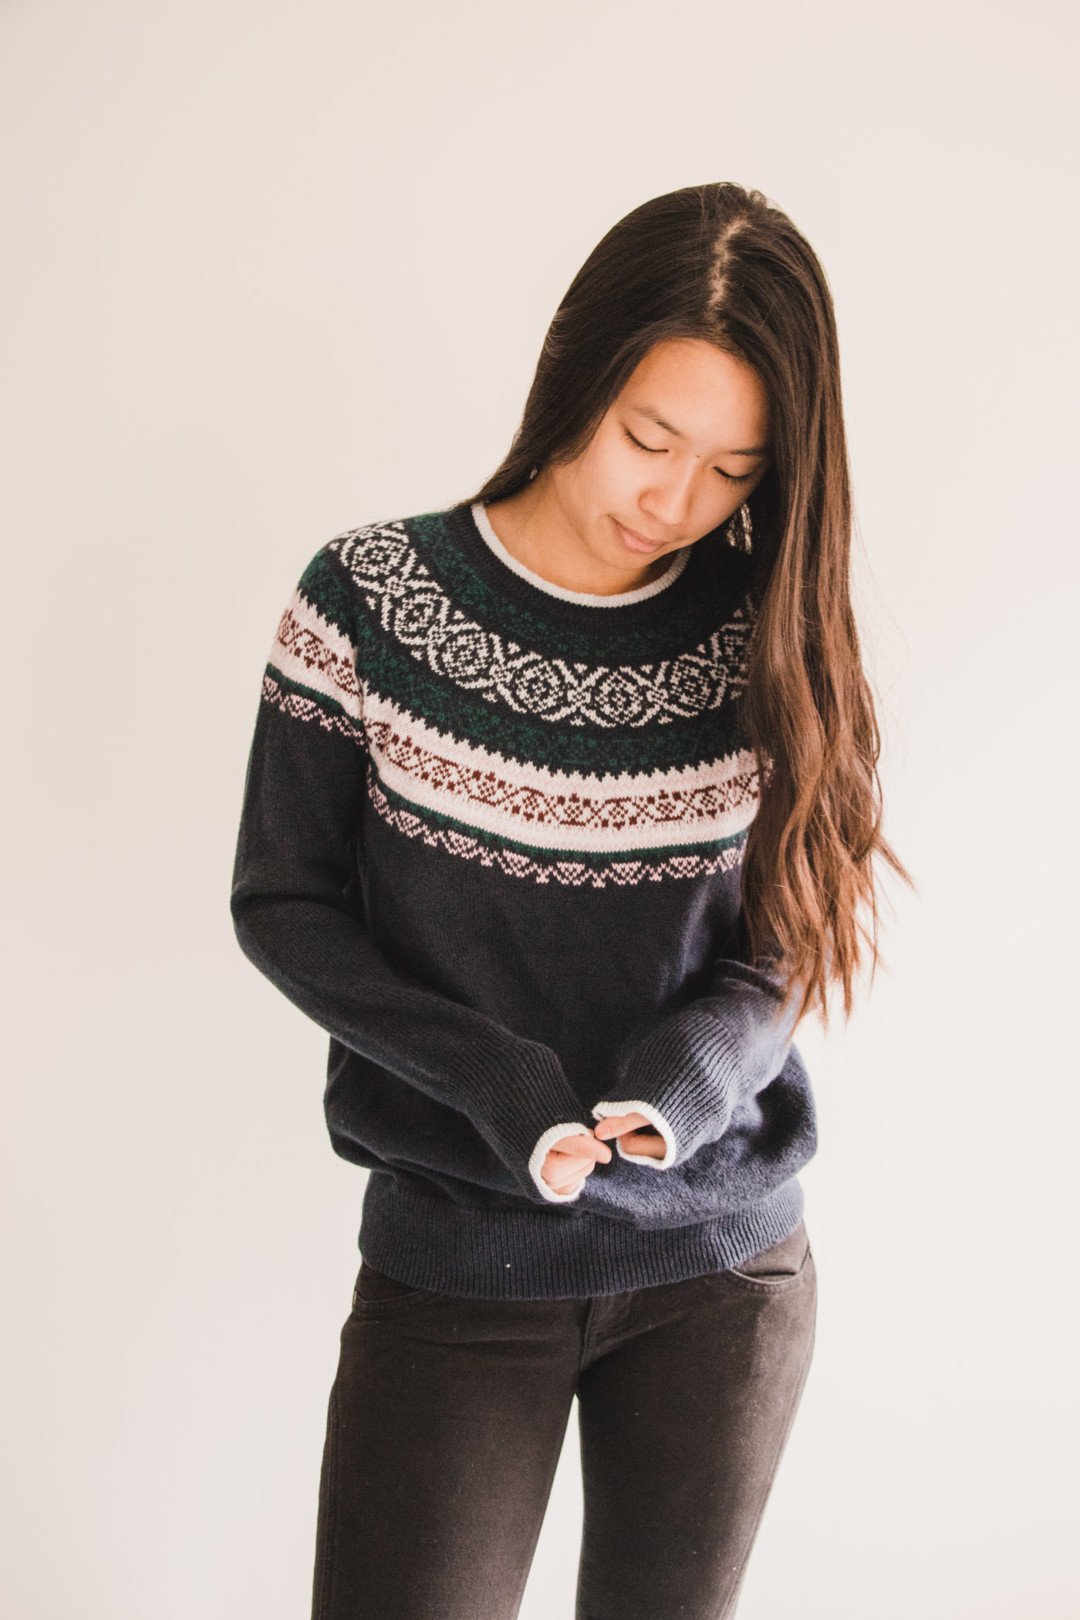 Fair Isle Classic Christmas Sweater from Hollister - Simply Lovebirds